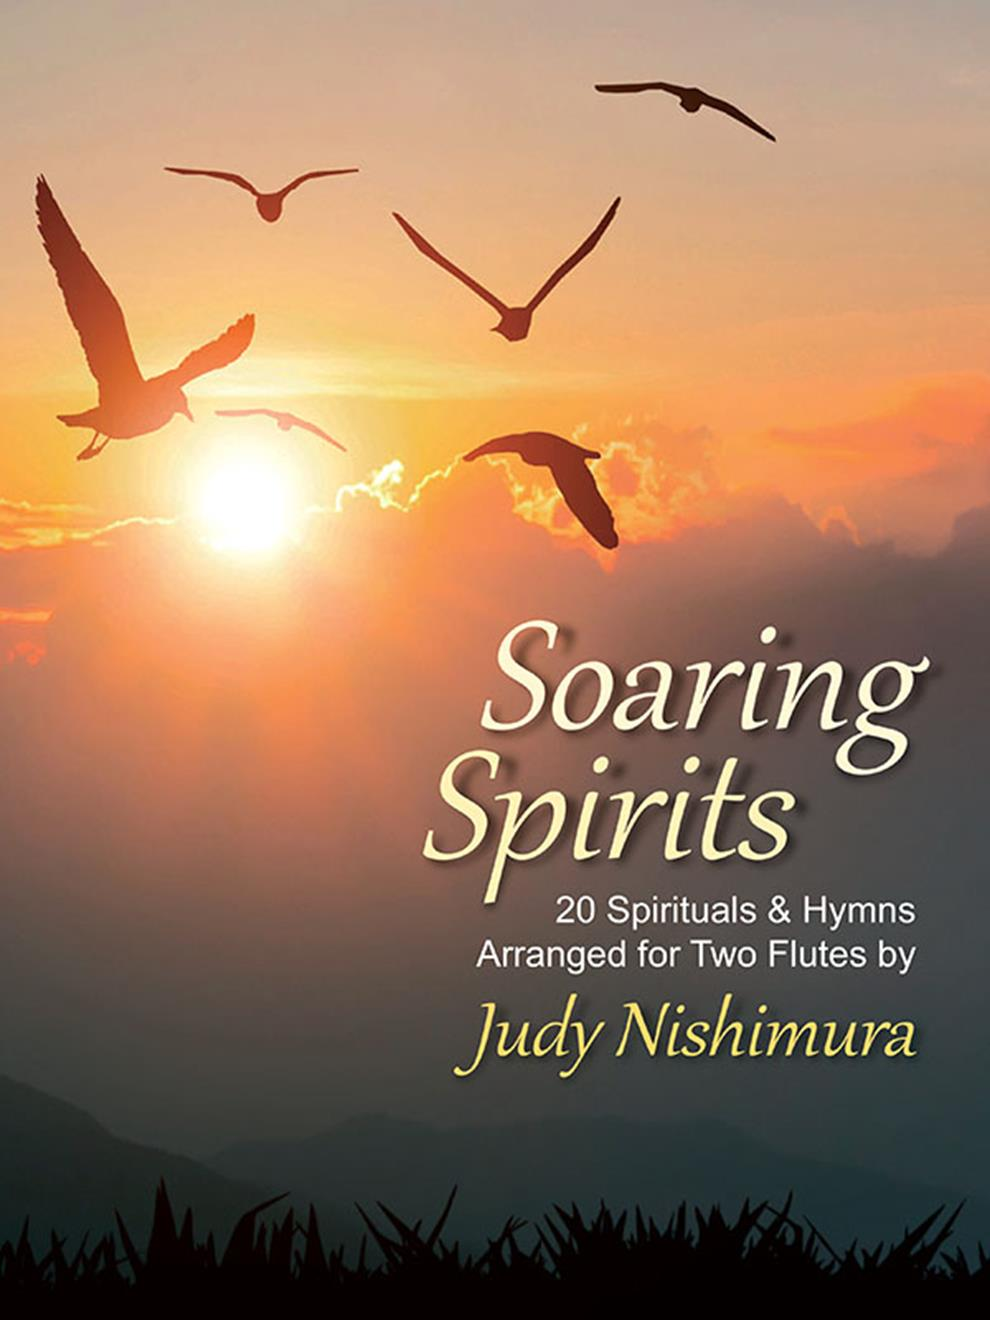 Soaring Spirits - Flute Duets Cover Image